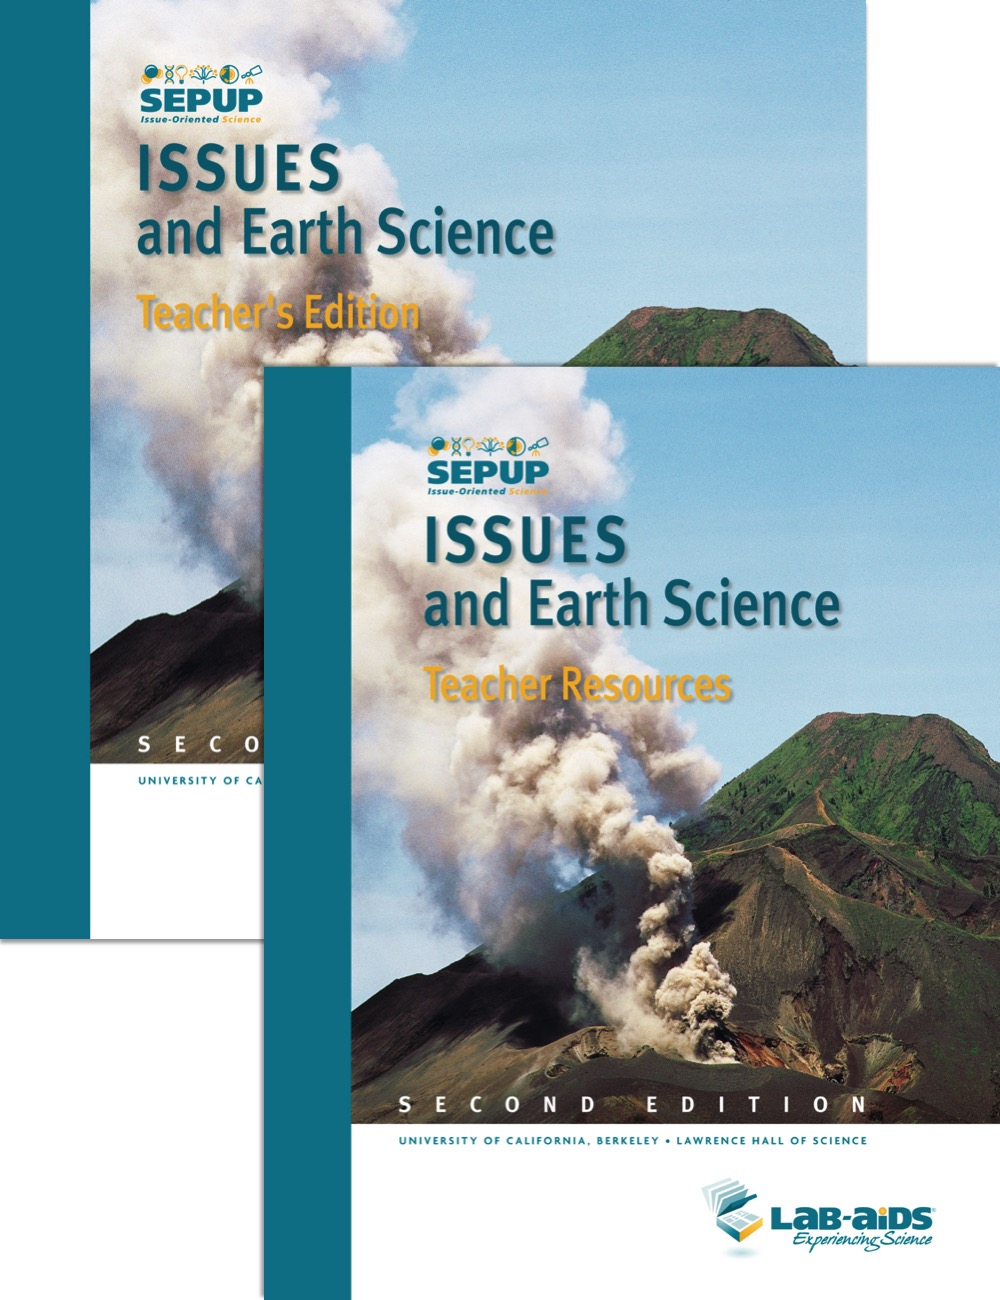 Issues and Earth Science Teacher's Edition and Teacher Resources (Full Course)